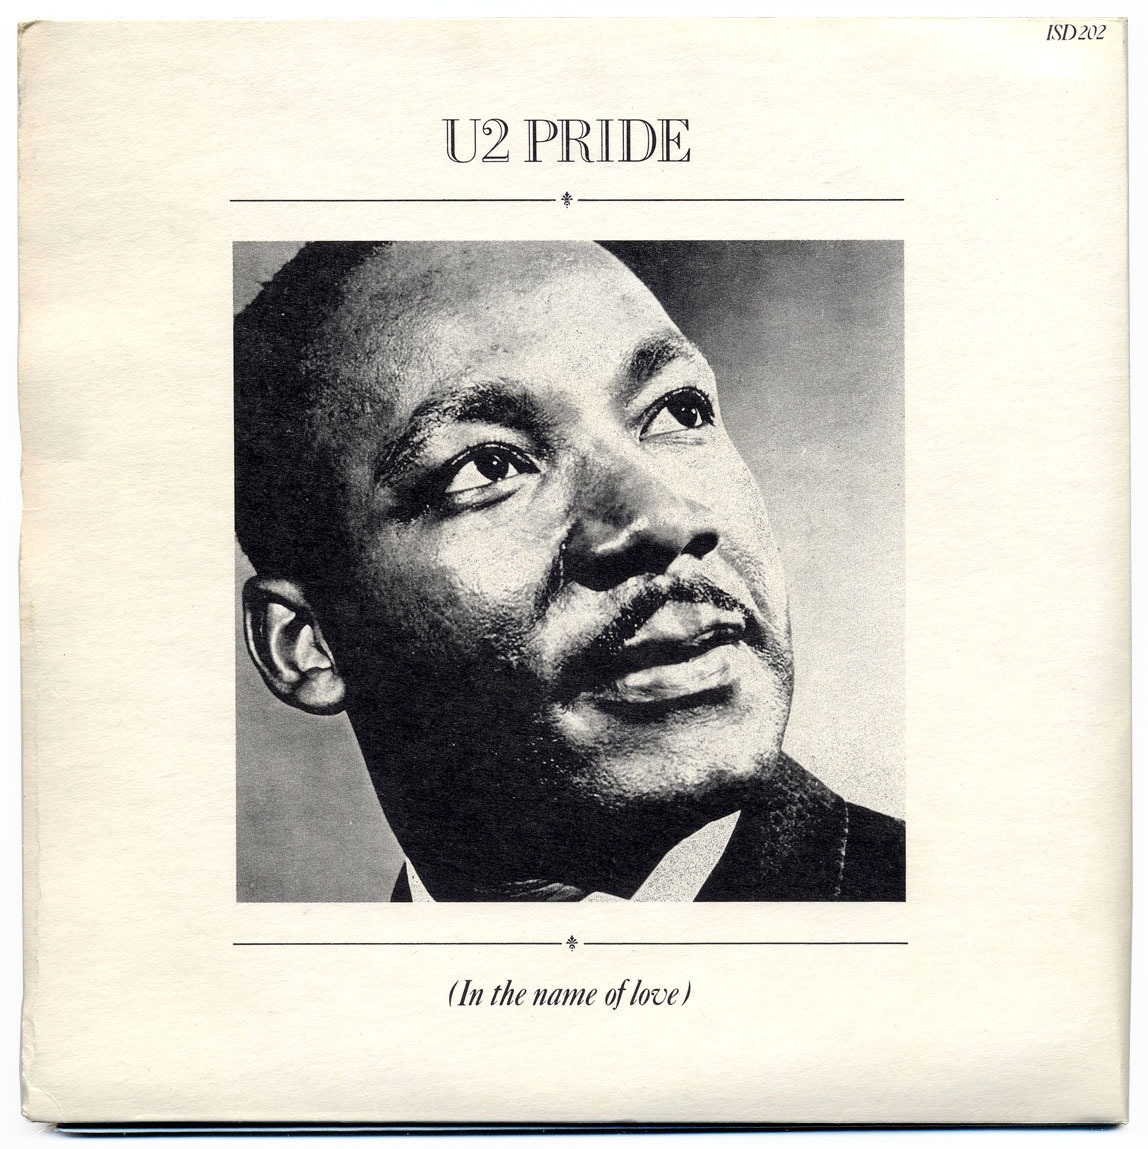 Pride (In The Name Of Love) b/w 4th Of JulyU2, Island Records/UK (1984) Back of sleeve